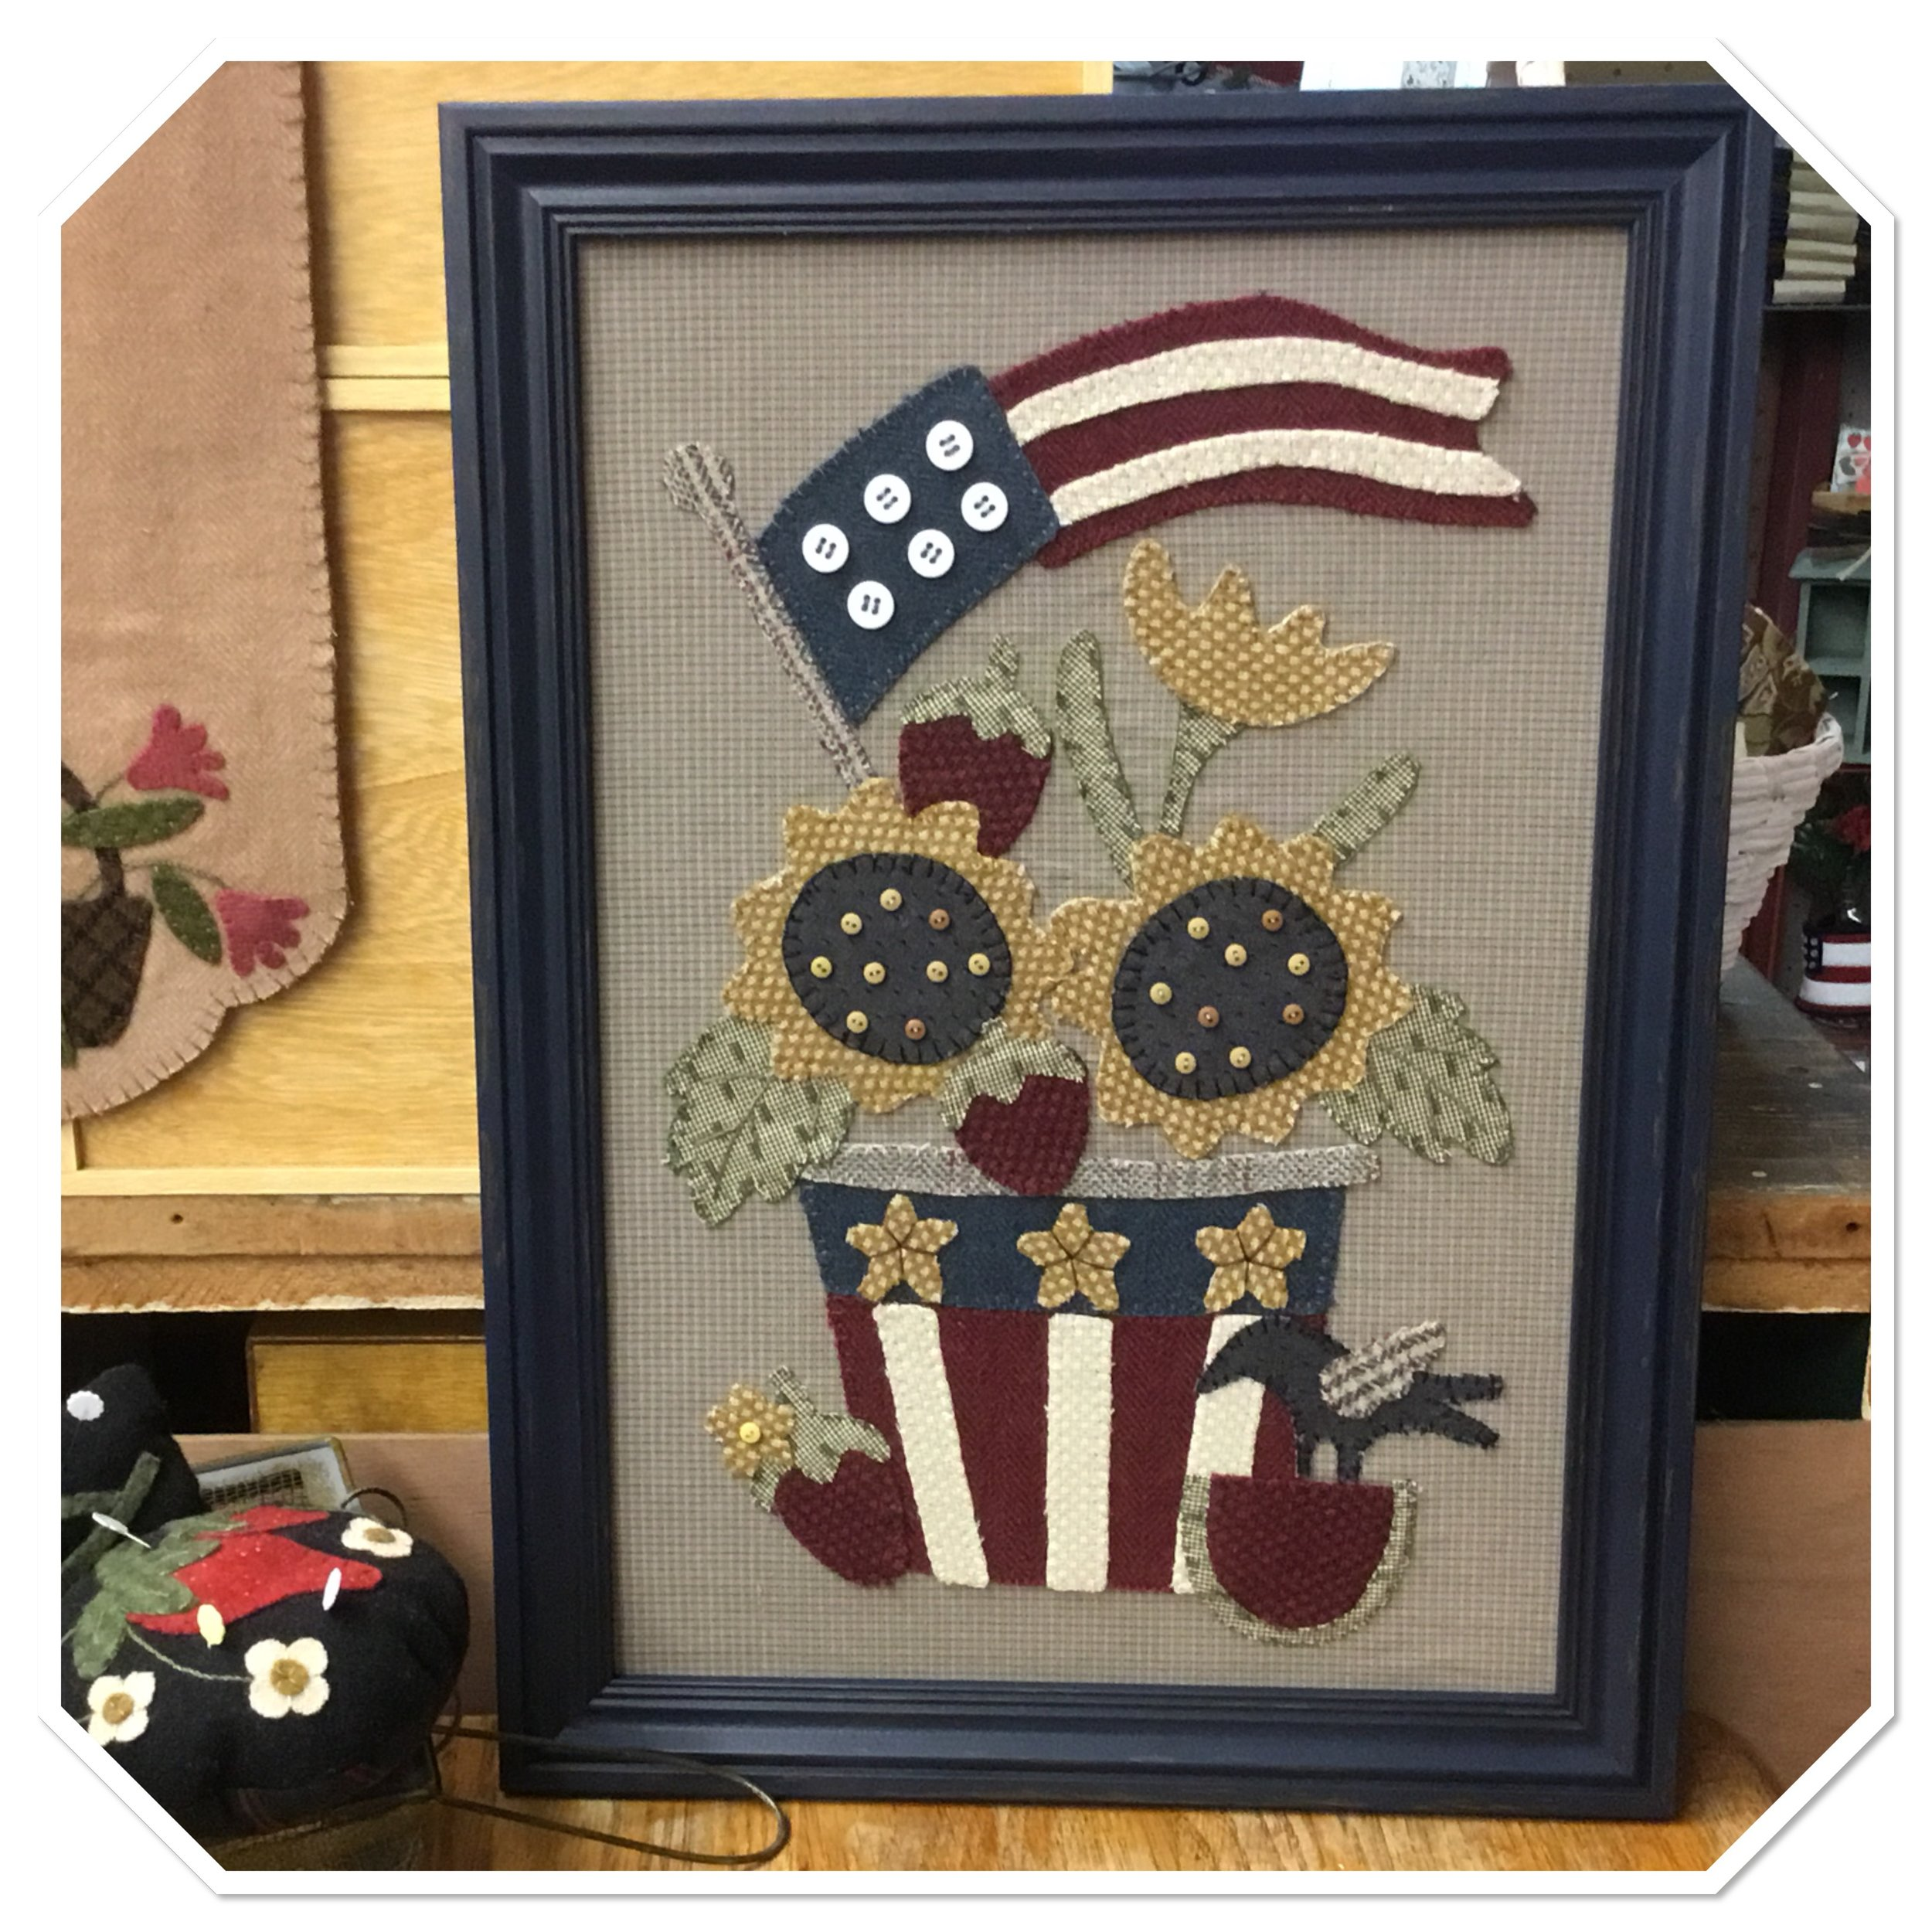 "We just added this beautiful wool project to our wool applique collection @theTHREADS.  This wool & homespun project was designed by Stacy West of Buttermilk Basin and is call, ""Spirit of America.""  We have kits that include 100% wools and homespuns.  You can order your own kit  by  clicking the link  http://commonthreadsquiltshop.net/shop/spirit-of-america"